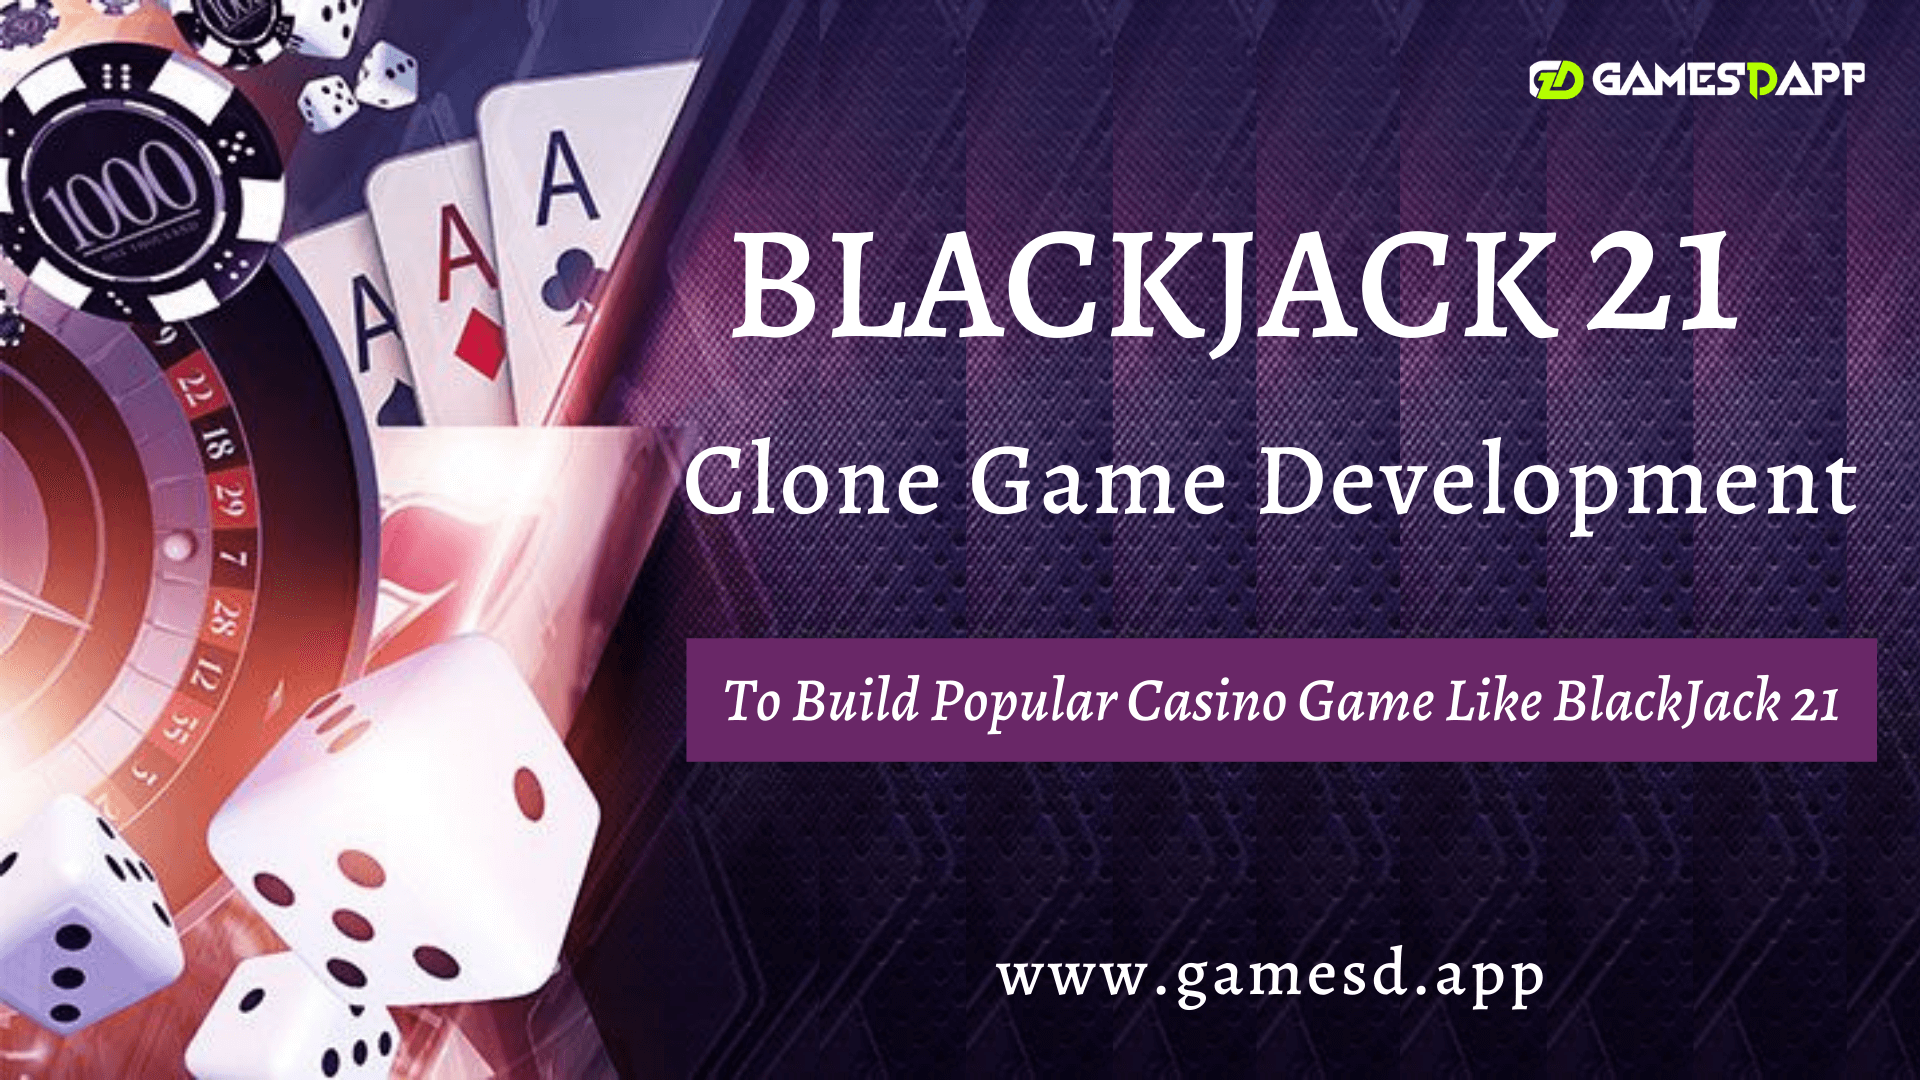 How to Build Popular Casino Game Like BlackJack 21? - BLACKJACK 21 Game Clone Development